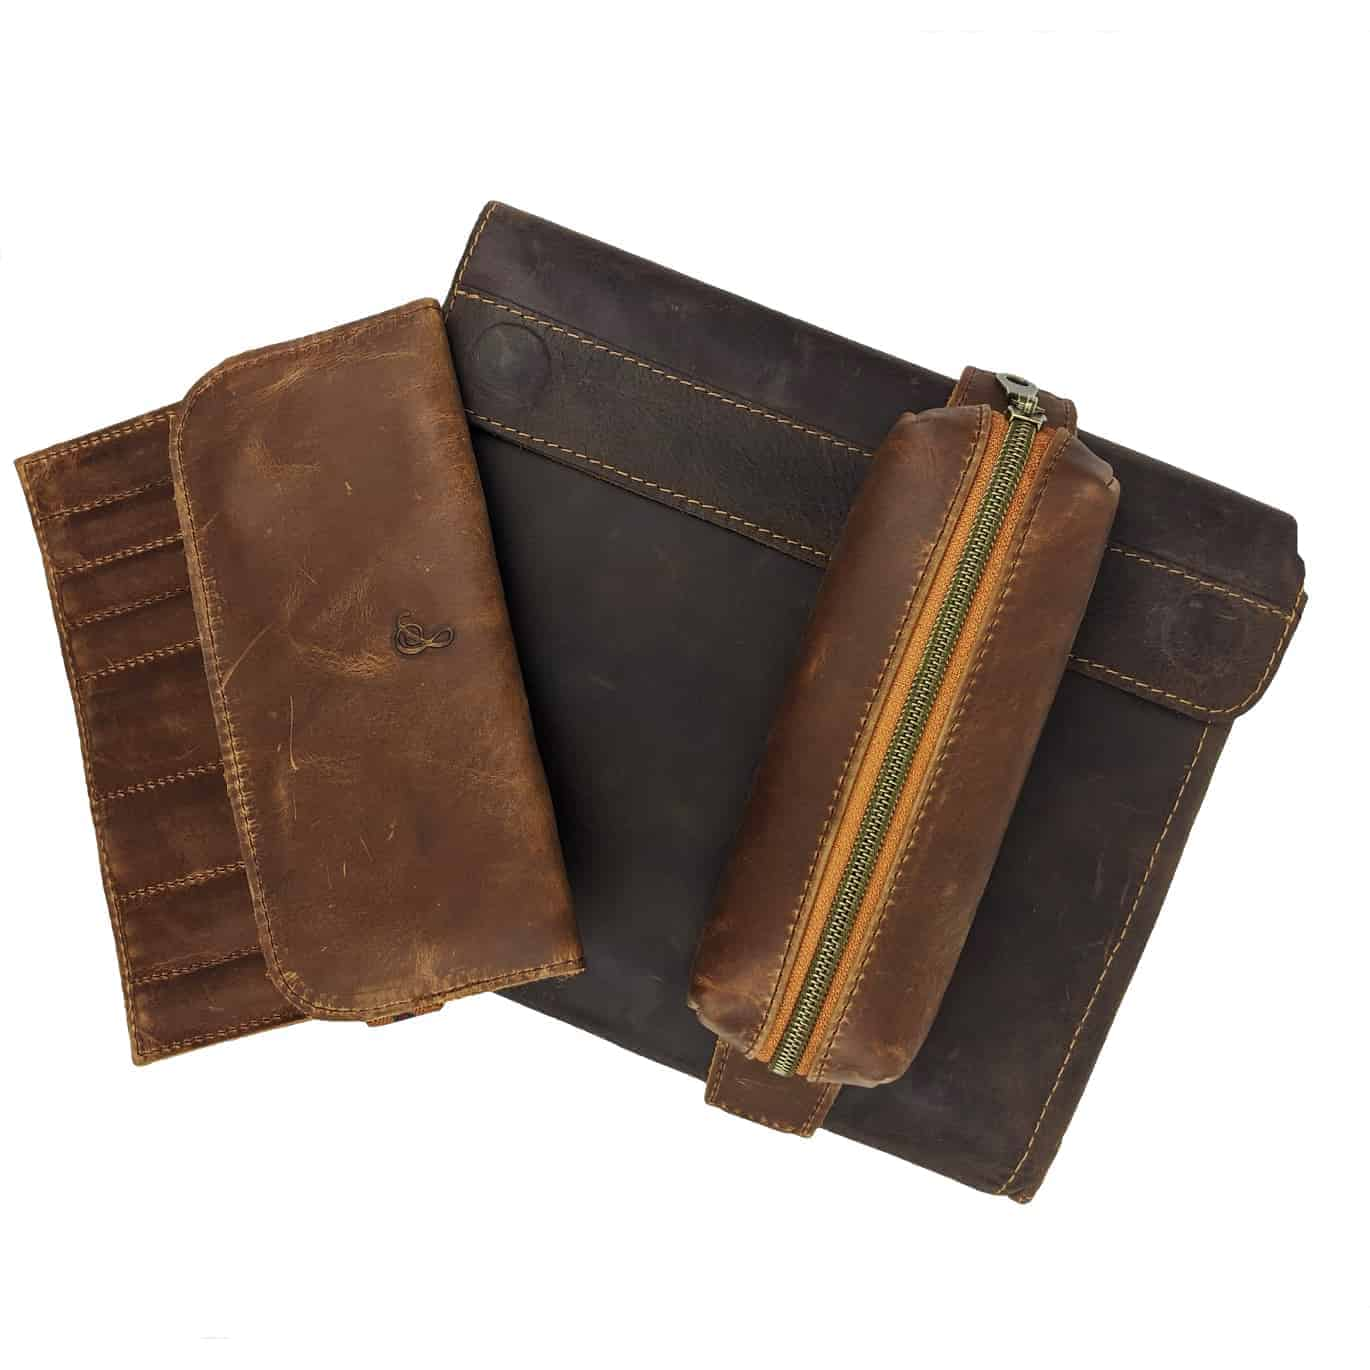 Brown leather cases.